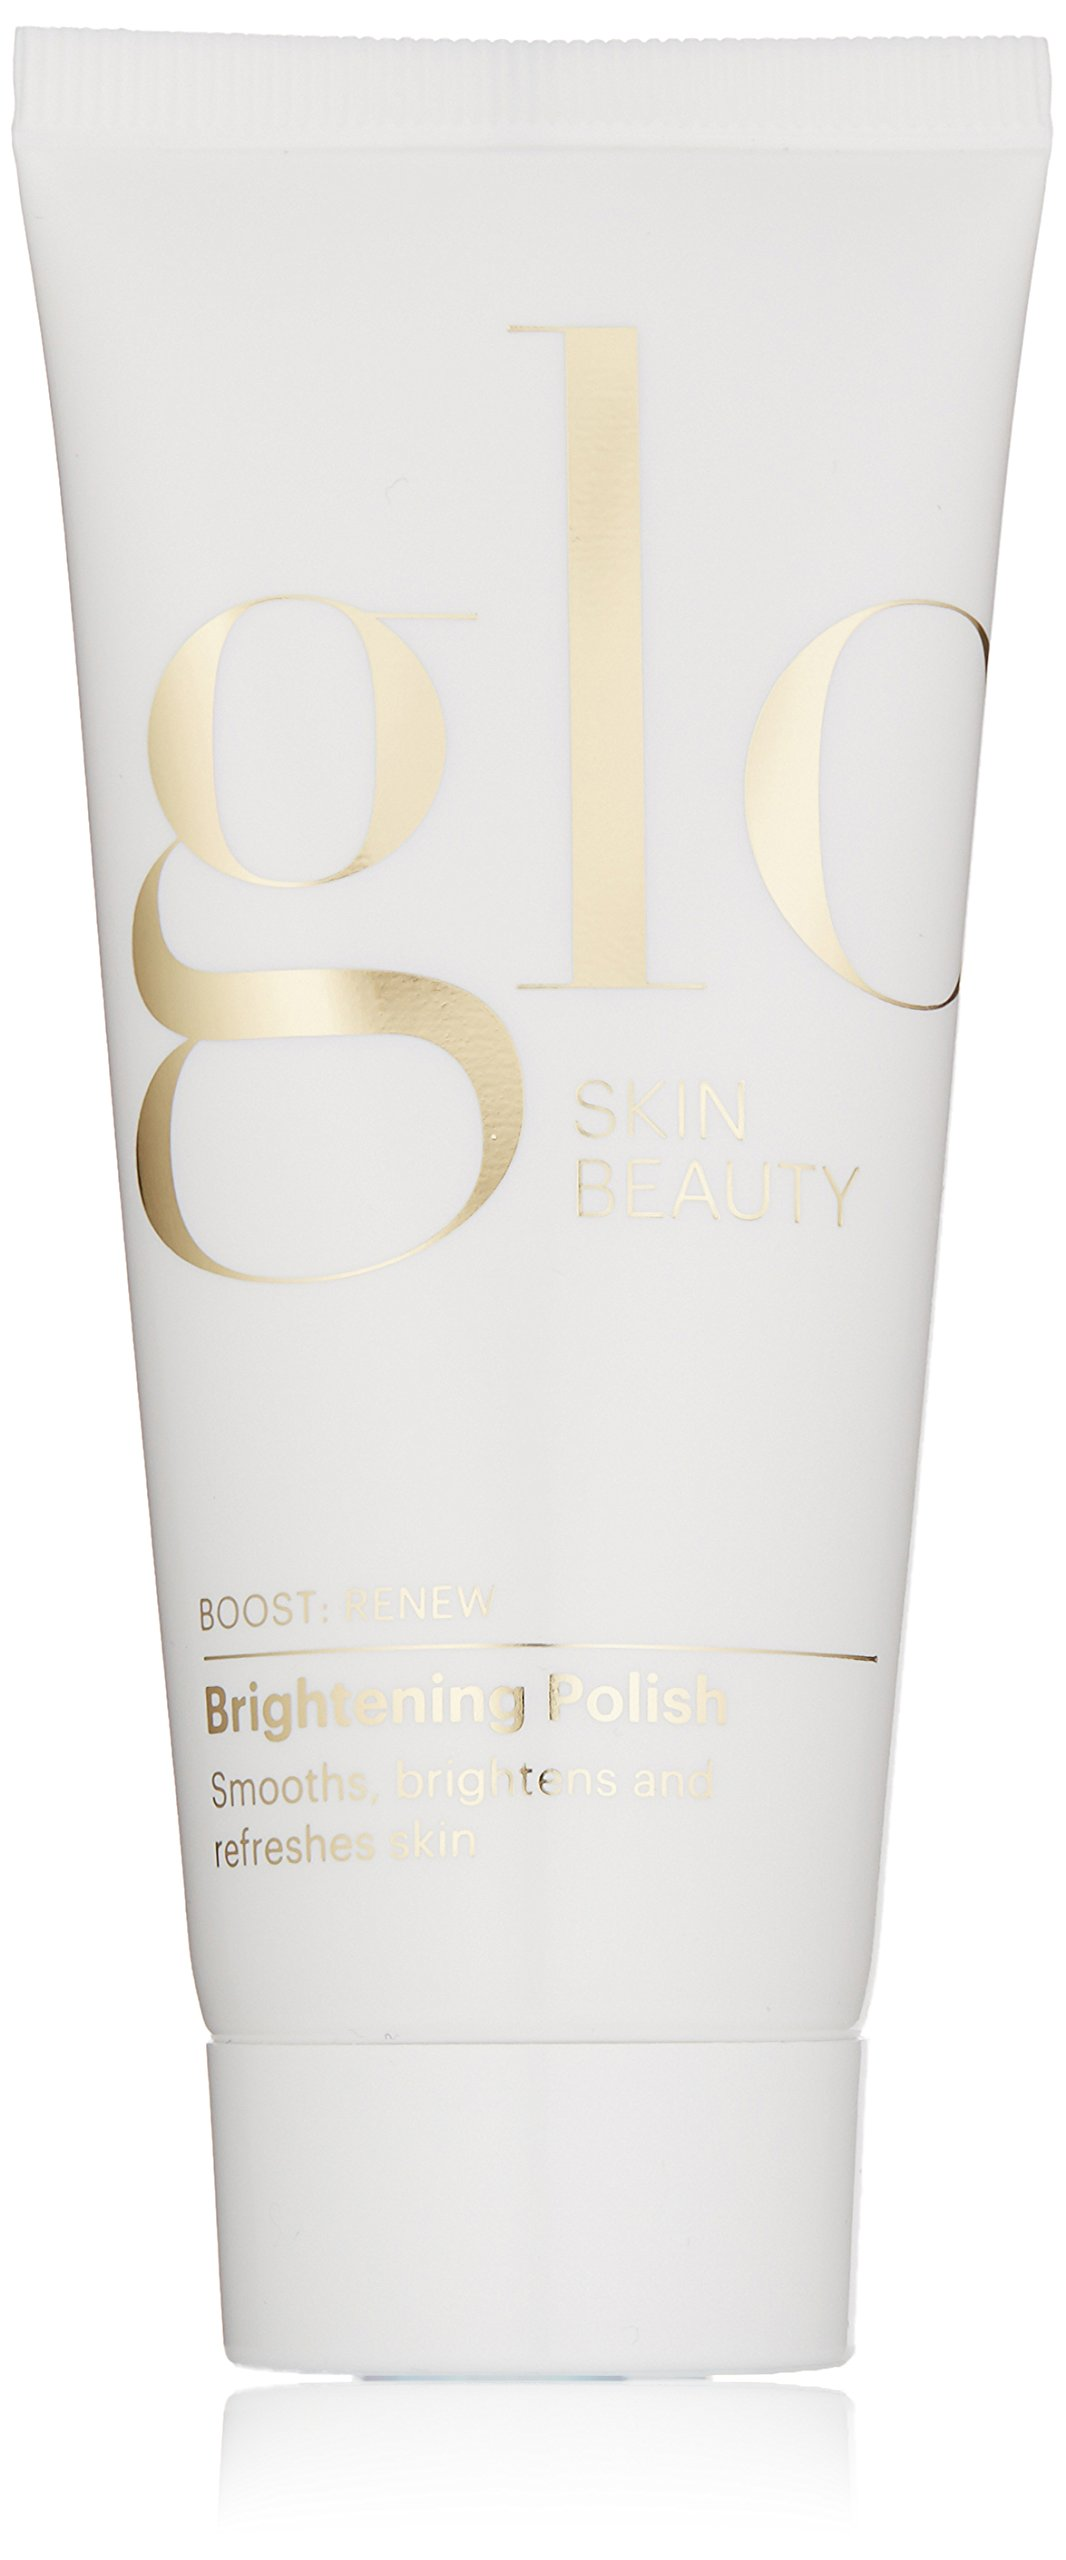 Glo Skin Beauty Brightening Polish | Exfoliating Face Scrub | Targets Dark Spots | Environmentally-Friendly